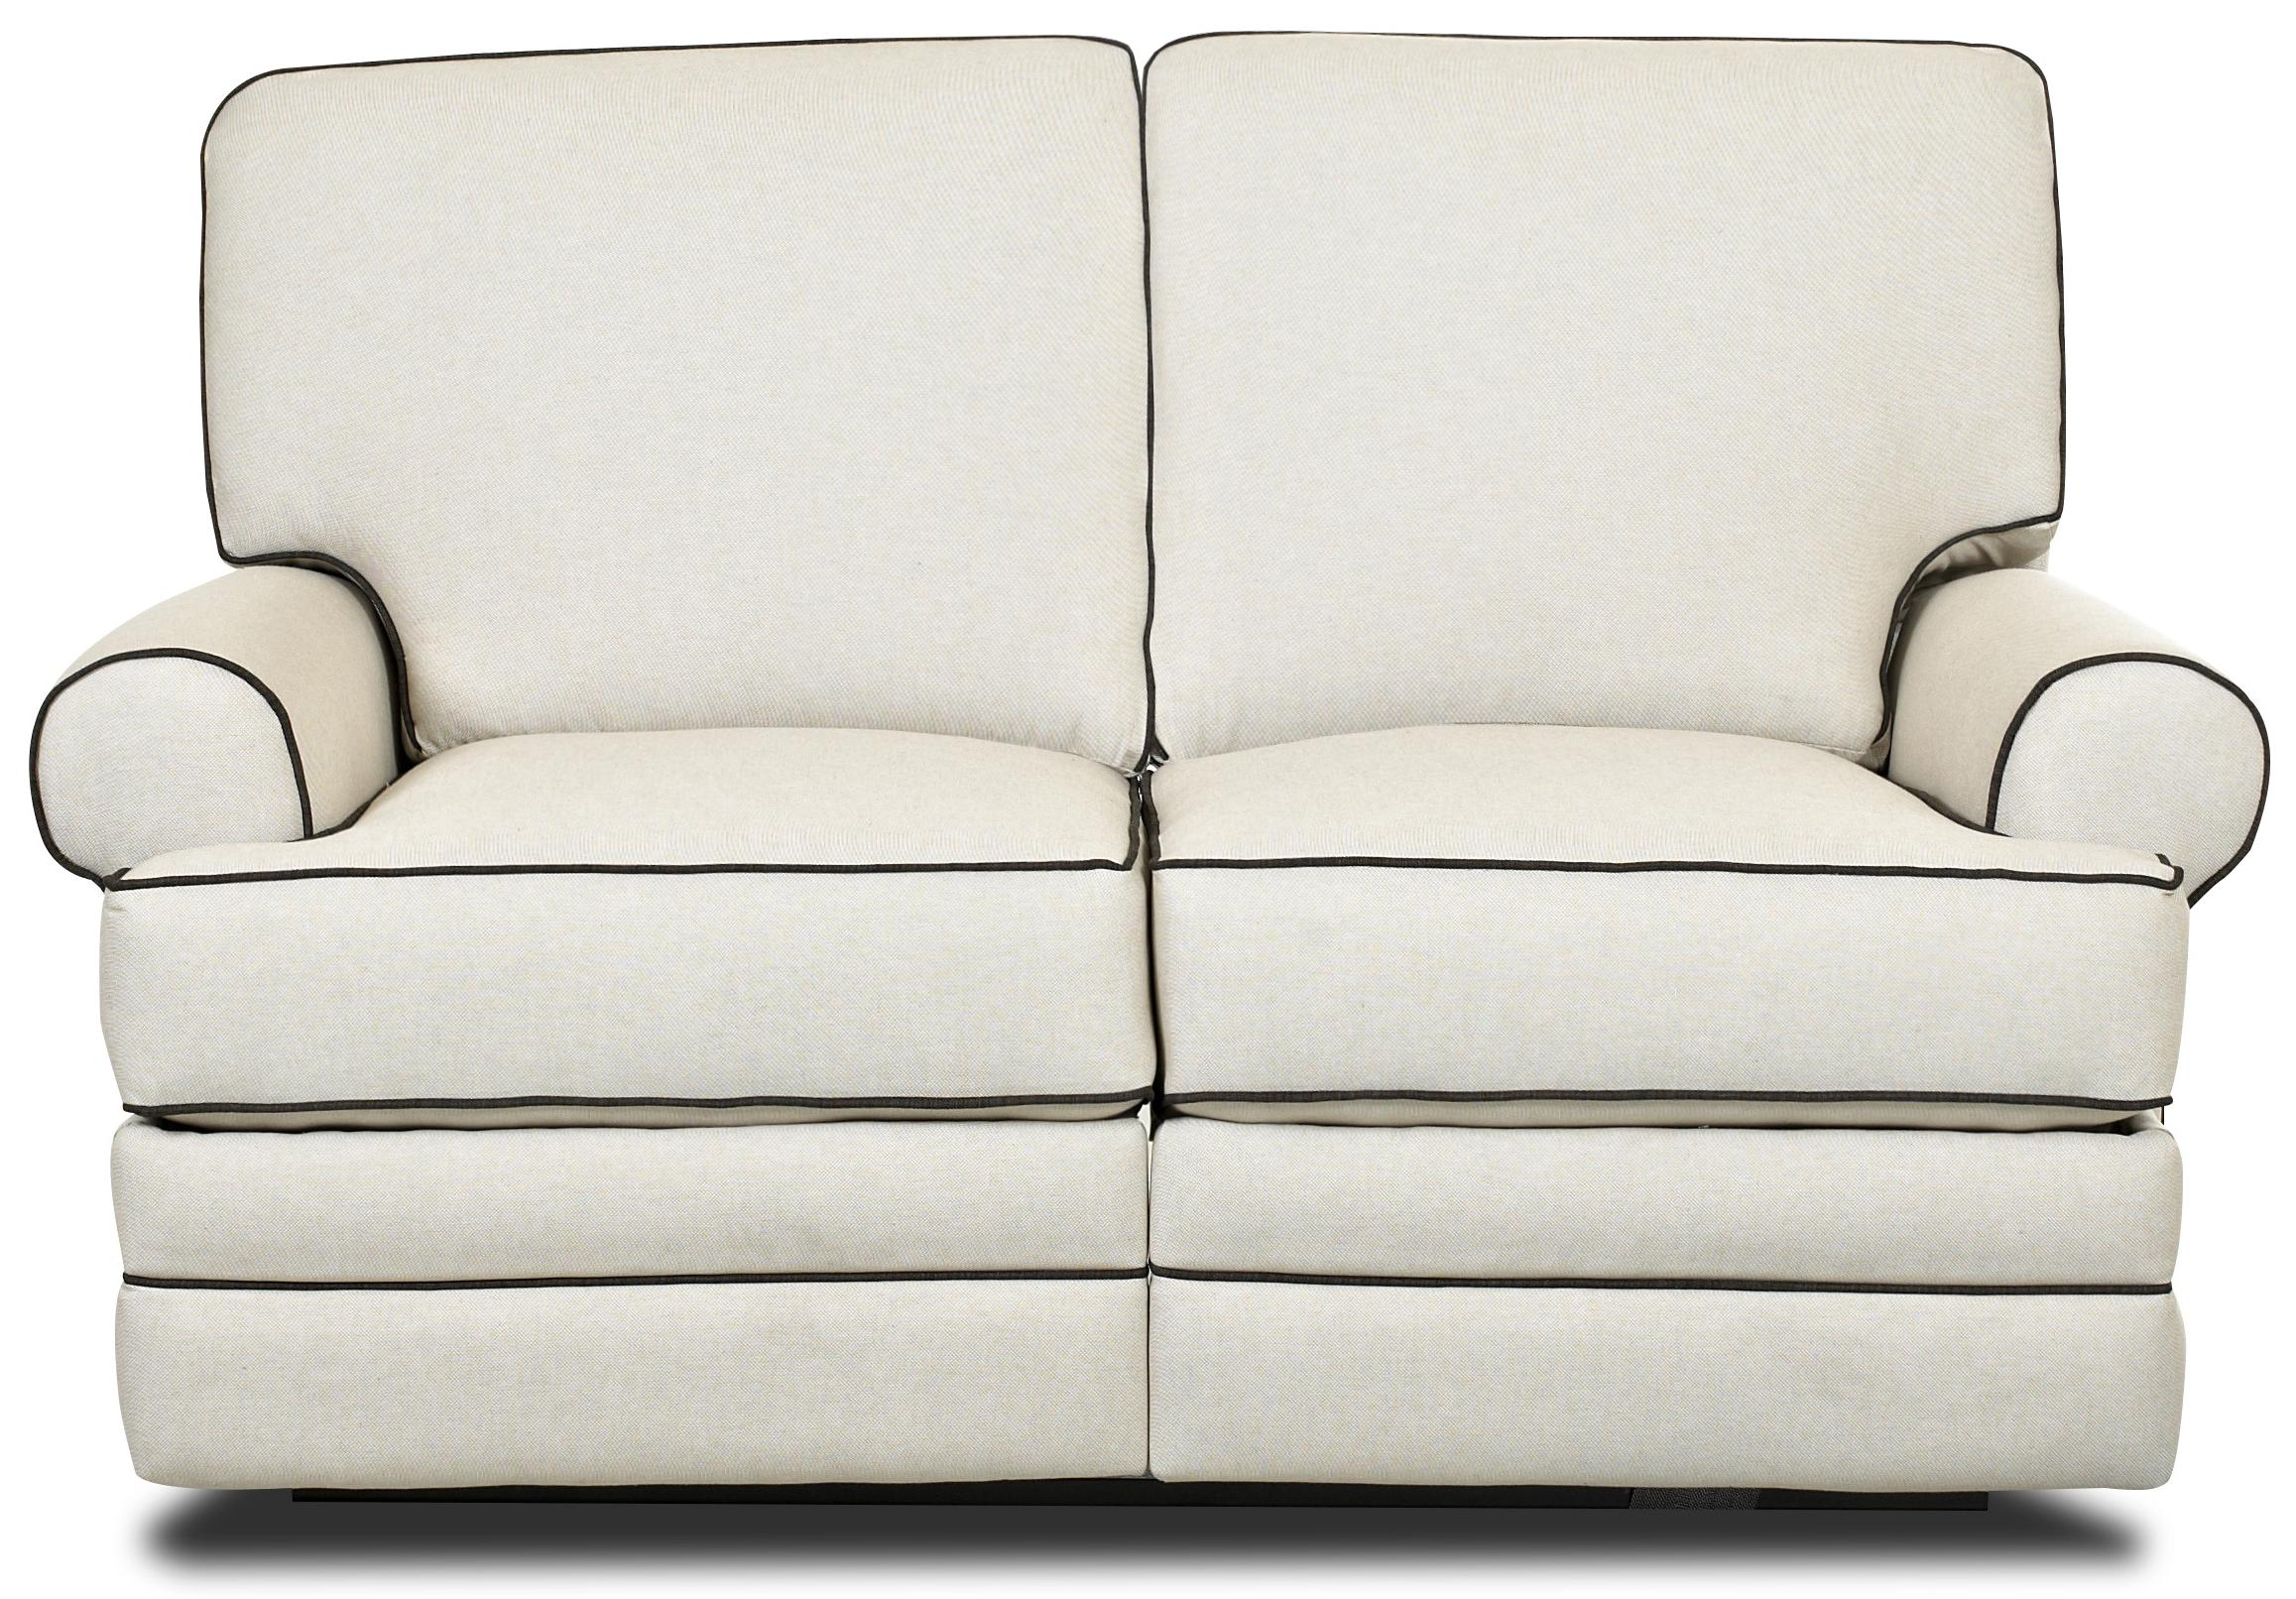 Klaussner Belleview Reclining Loveseat - Item Number 21303 RLS  sc 1 st  Value City Furniture & Klaussner Belleview Classic Reclining Loveseat with Rolled Arms ... islam-shia.org